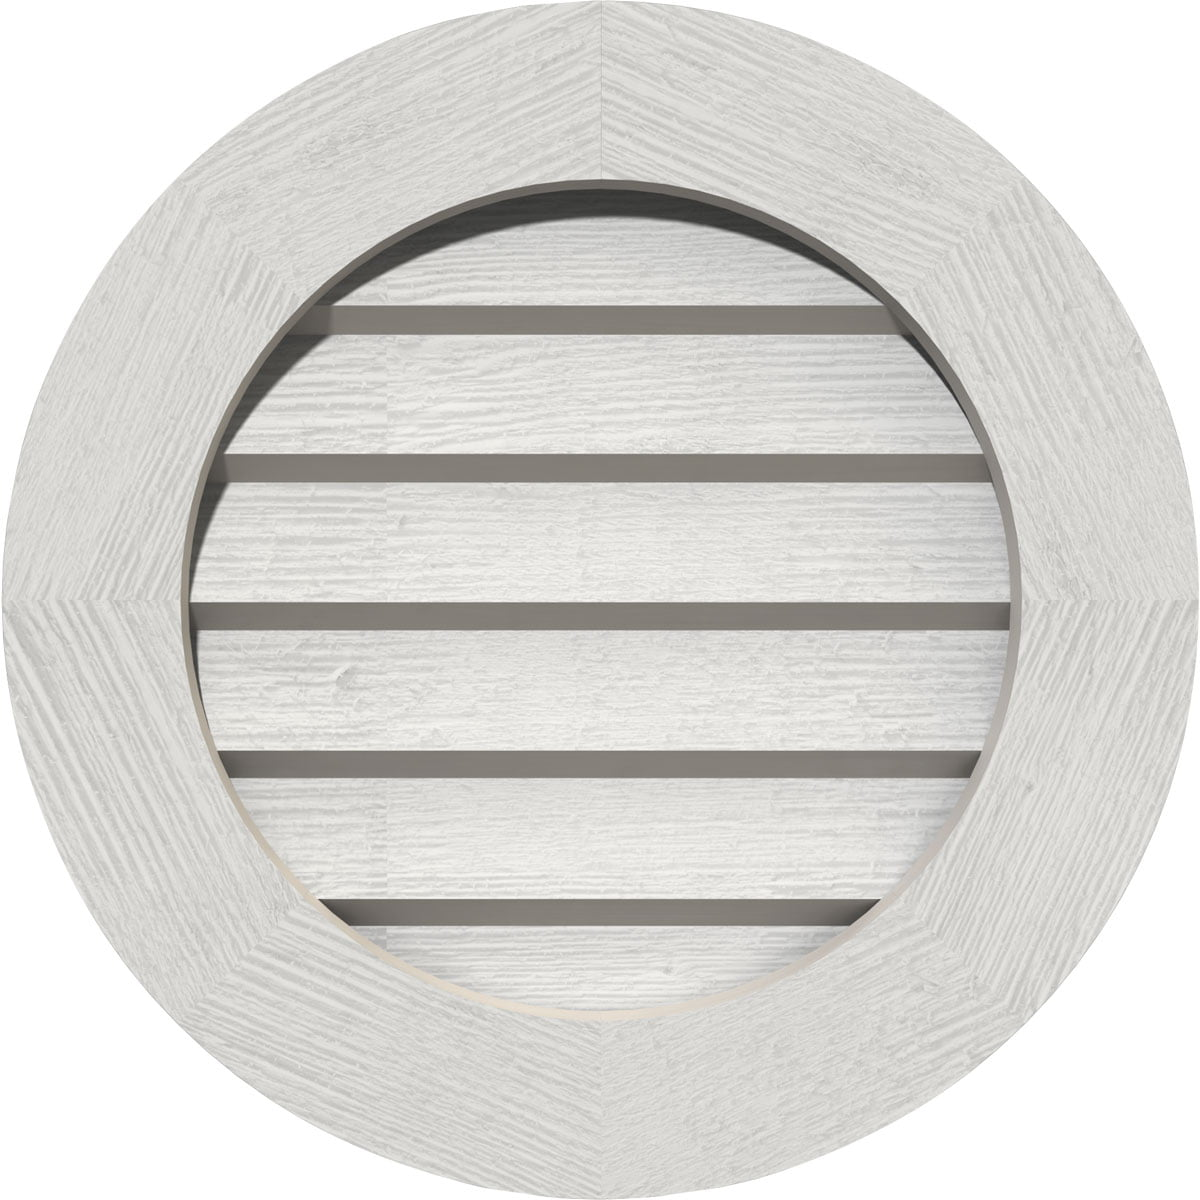 36 W X 36 H Round Gable Vent 41 W X 41 H Frame Size Primed Non Functional Smooth Western Red Cedar Gable Vent W Decorative Face Frame Walmart Com Walmart Com